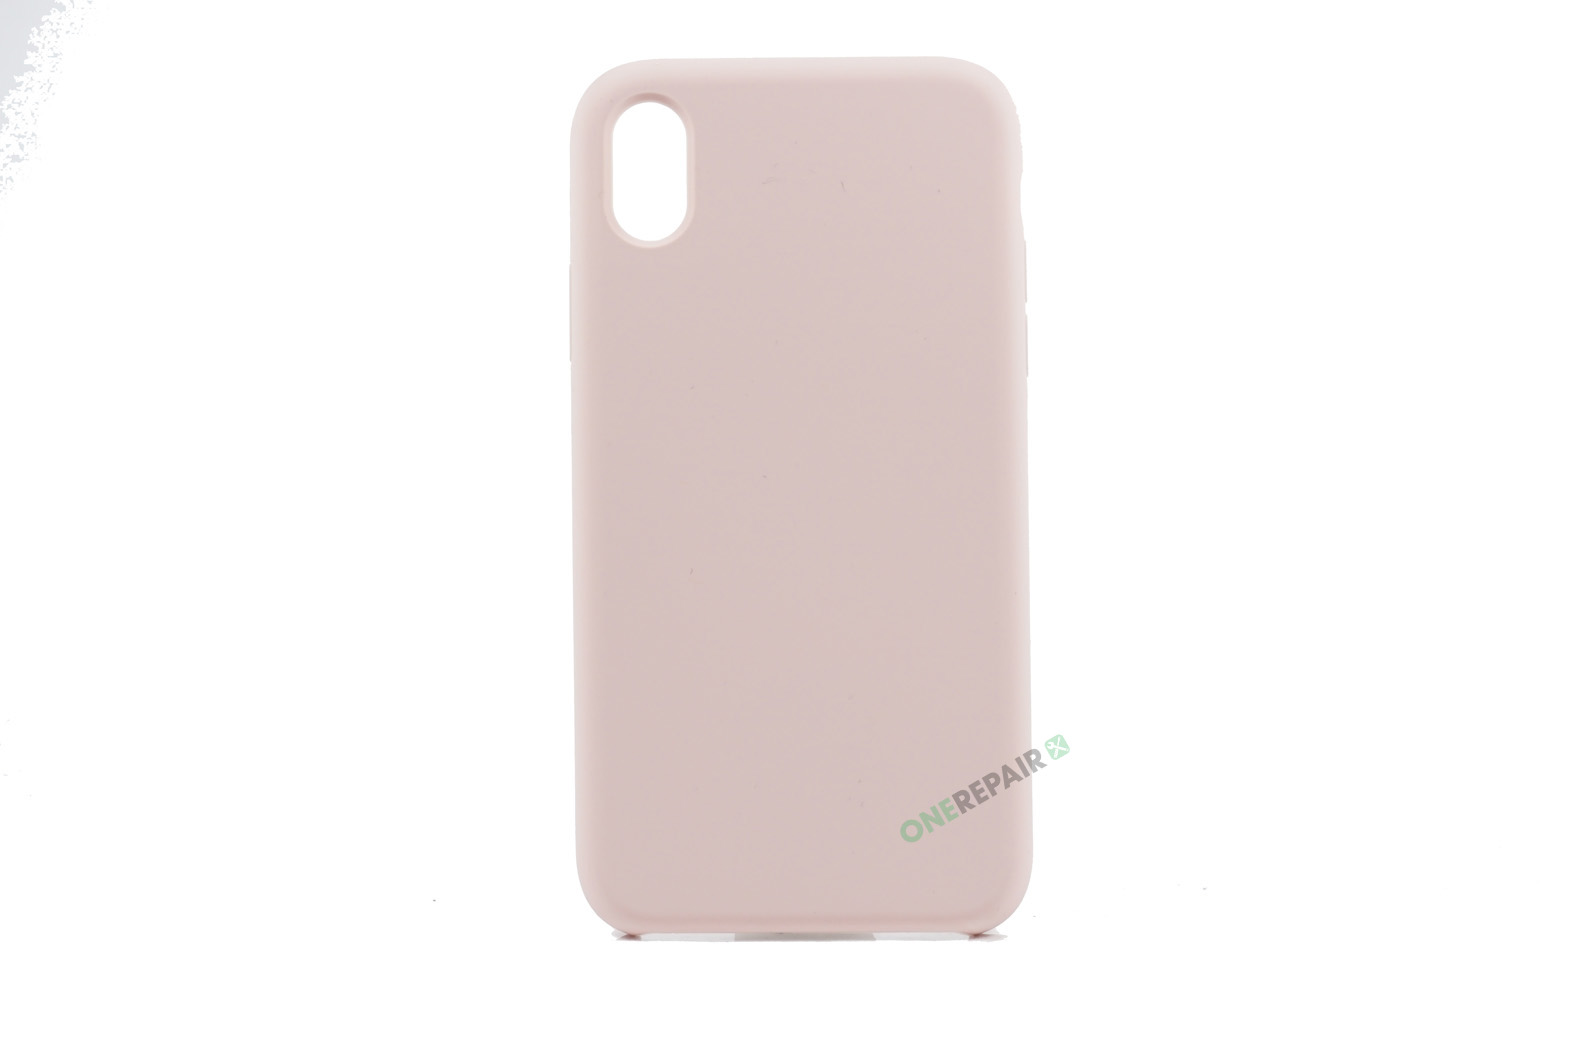 iPhone Xr, A1984, A2105, A2106, A2108, Silikone, Applecover, Apple, Simpel, Lyseroed, Lyserød, Pastel, Pink, Billig, Cover,